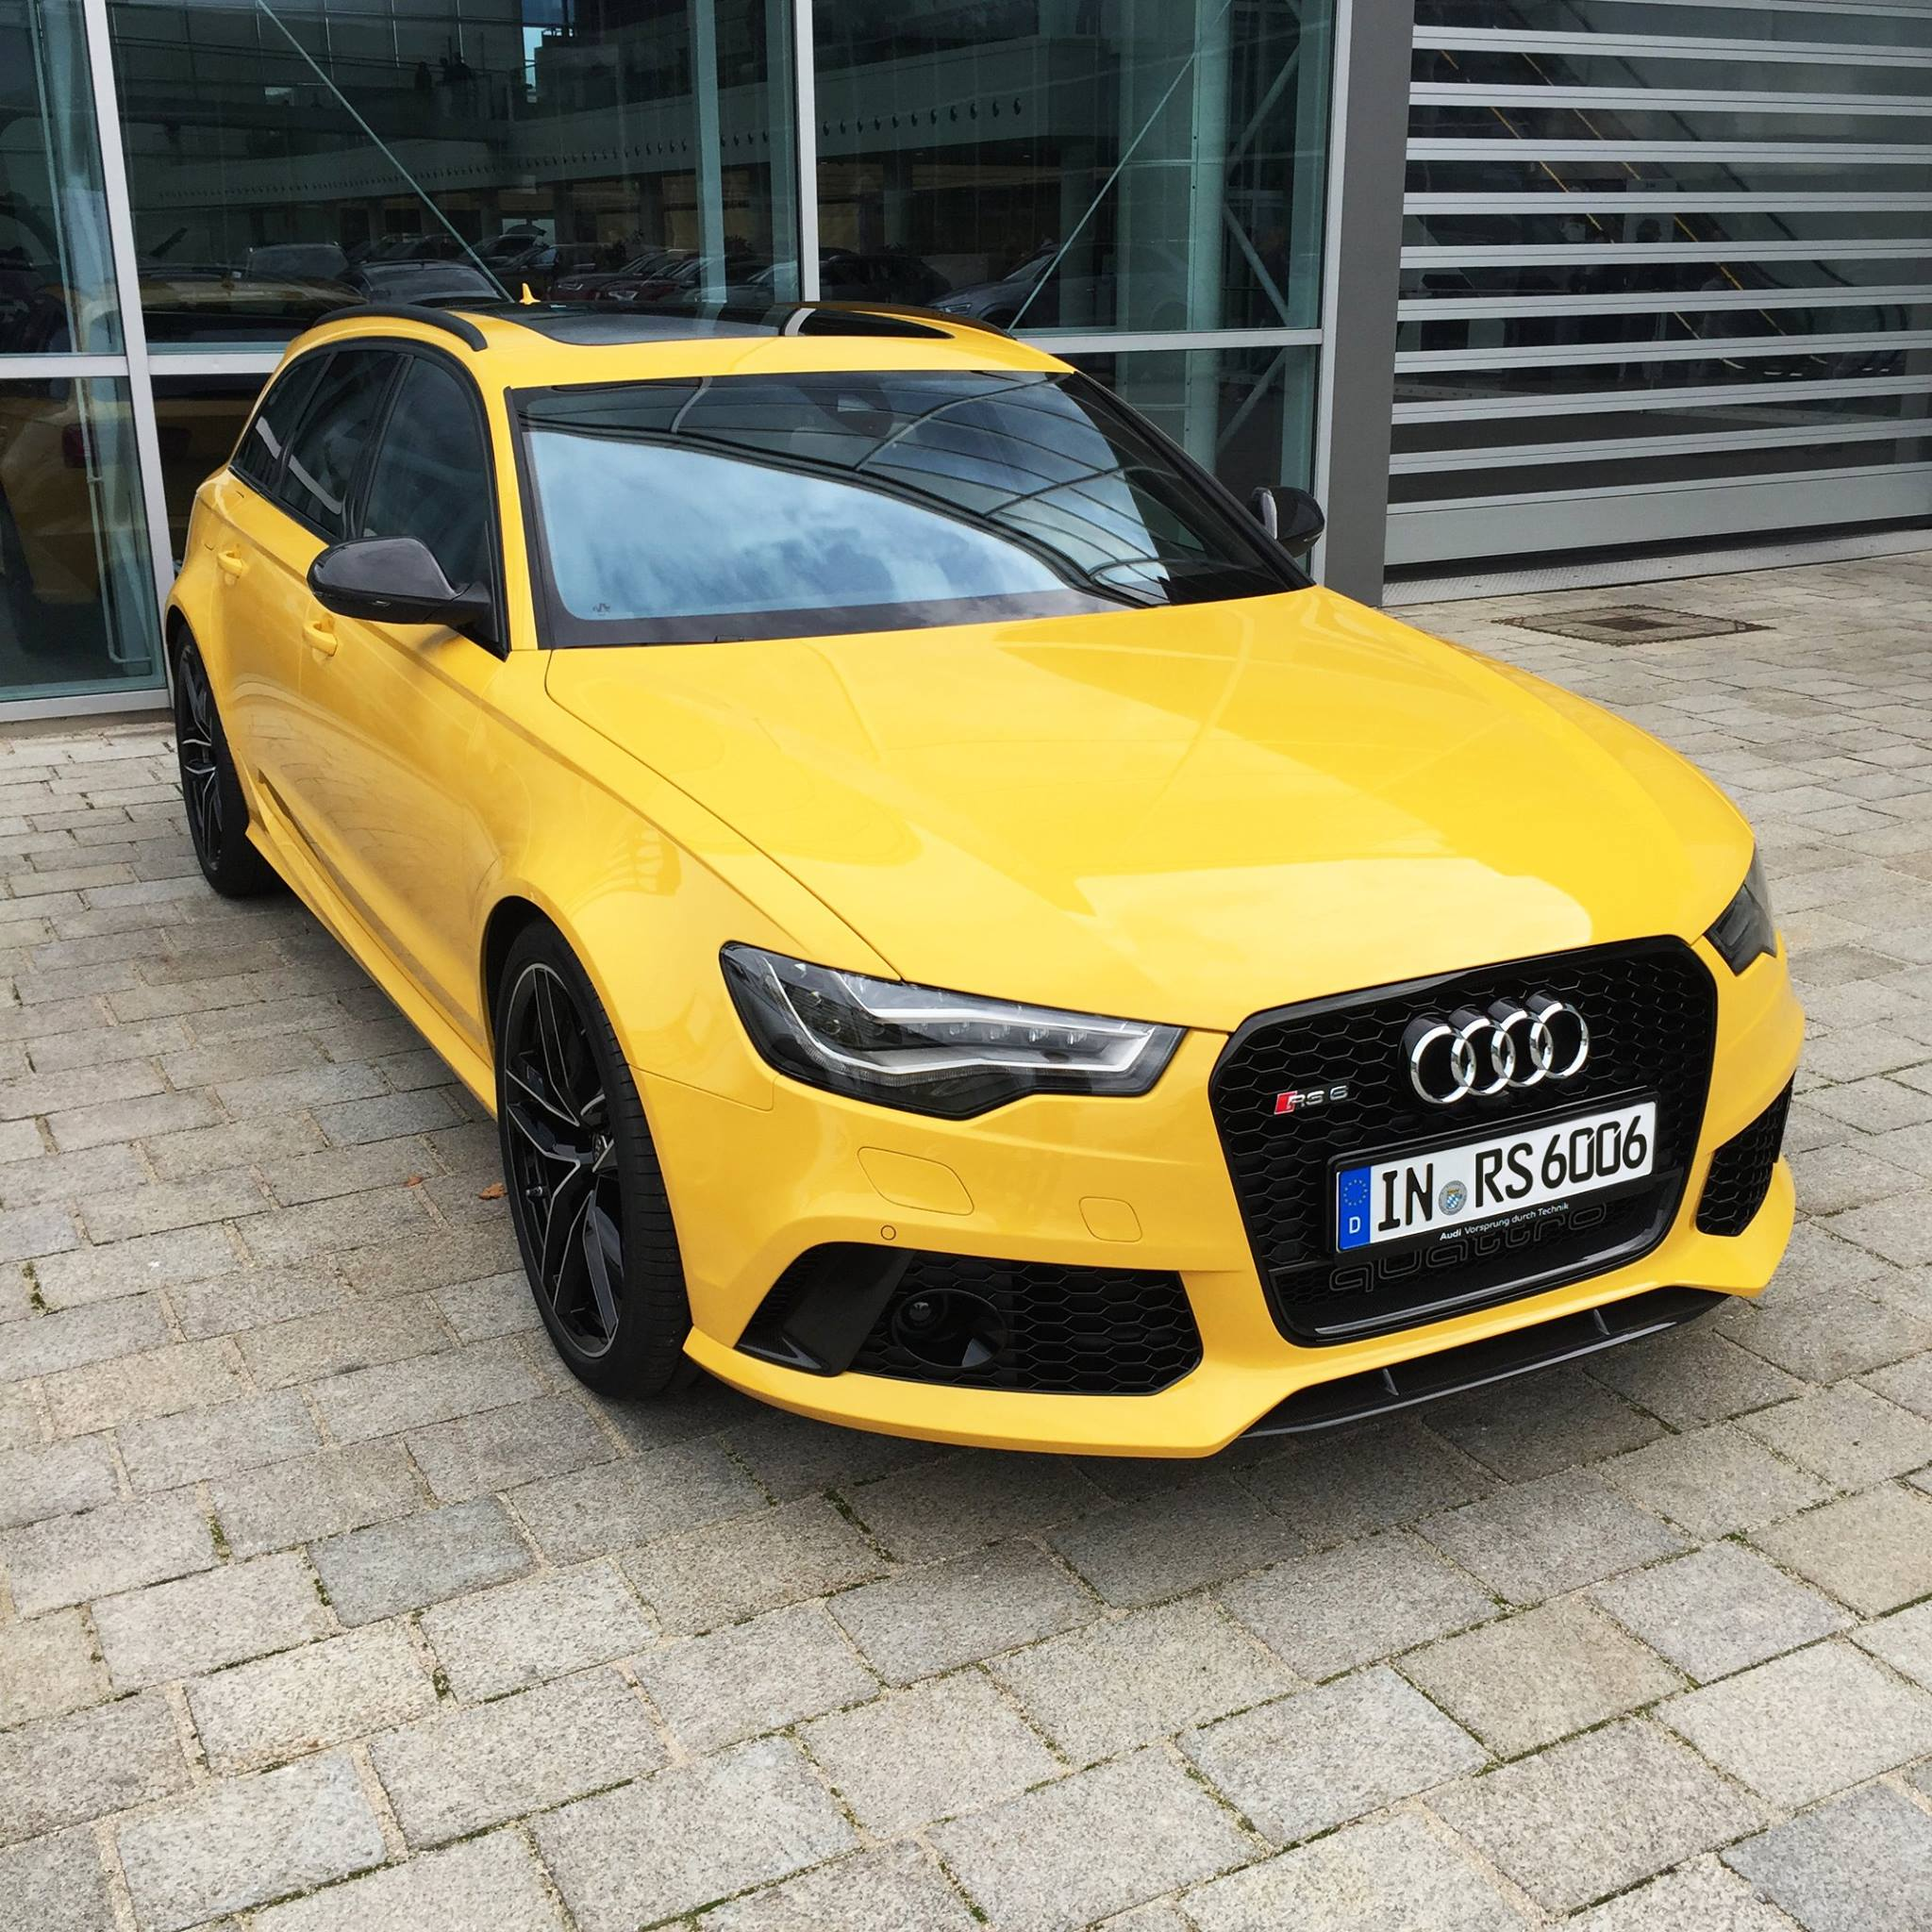 Audi Rs6 Avant In Speed Yellow Speedgelb At Audi Forum Ingolstadt